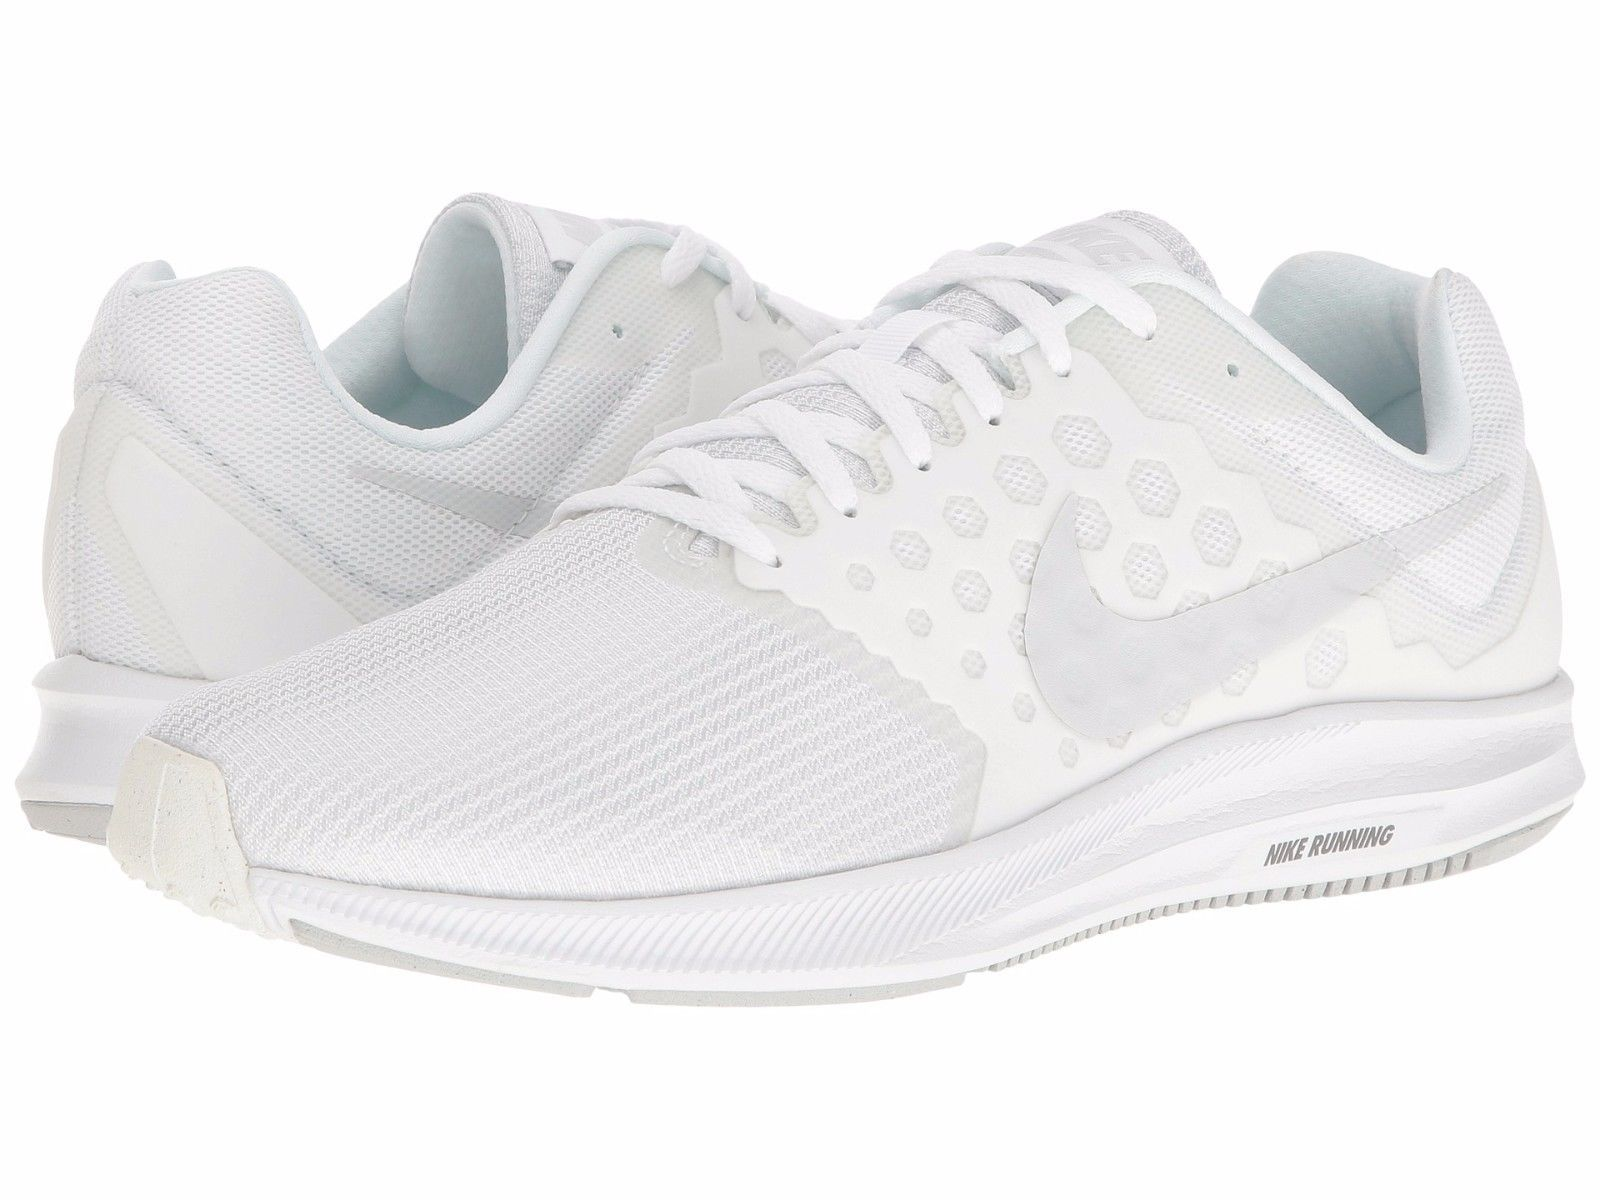 Nike DOWNSHIFTER 7 Mens White 100 Lace Up Athletic Mesh Training Running  Shoes